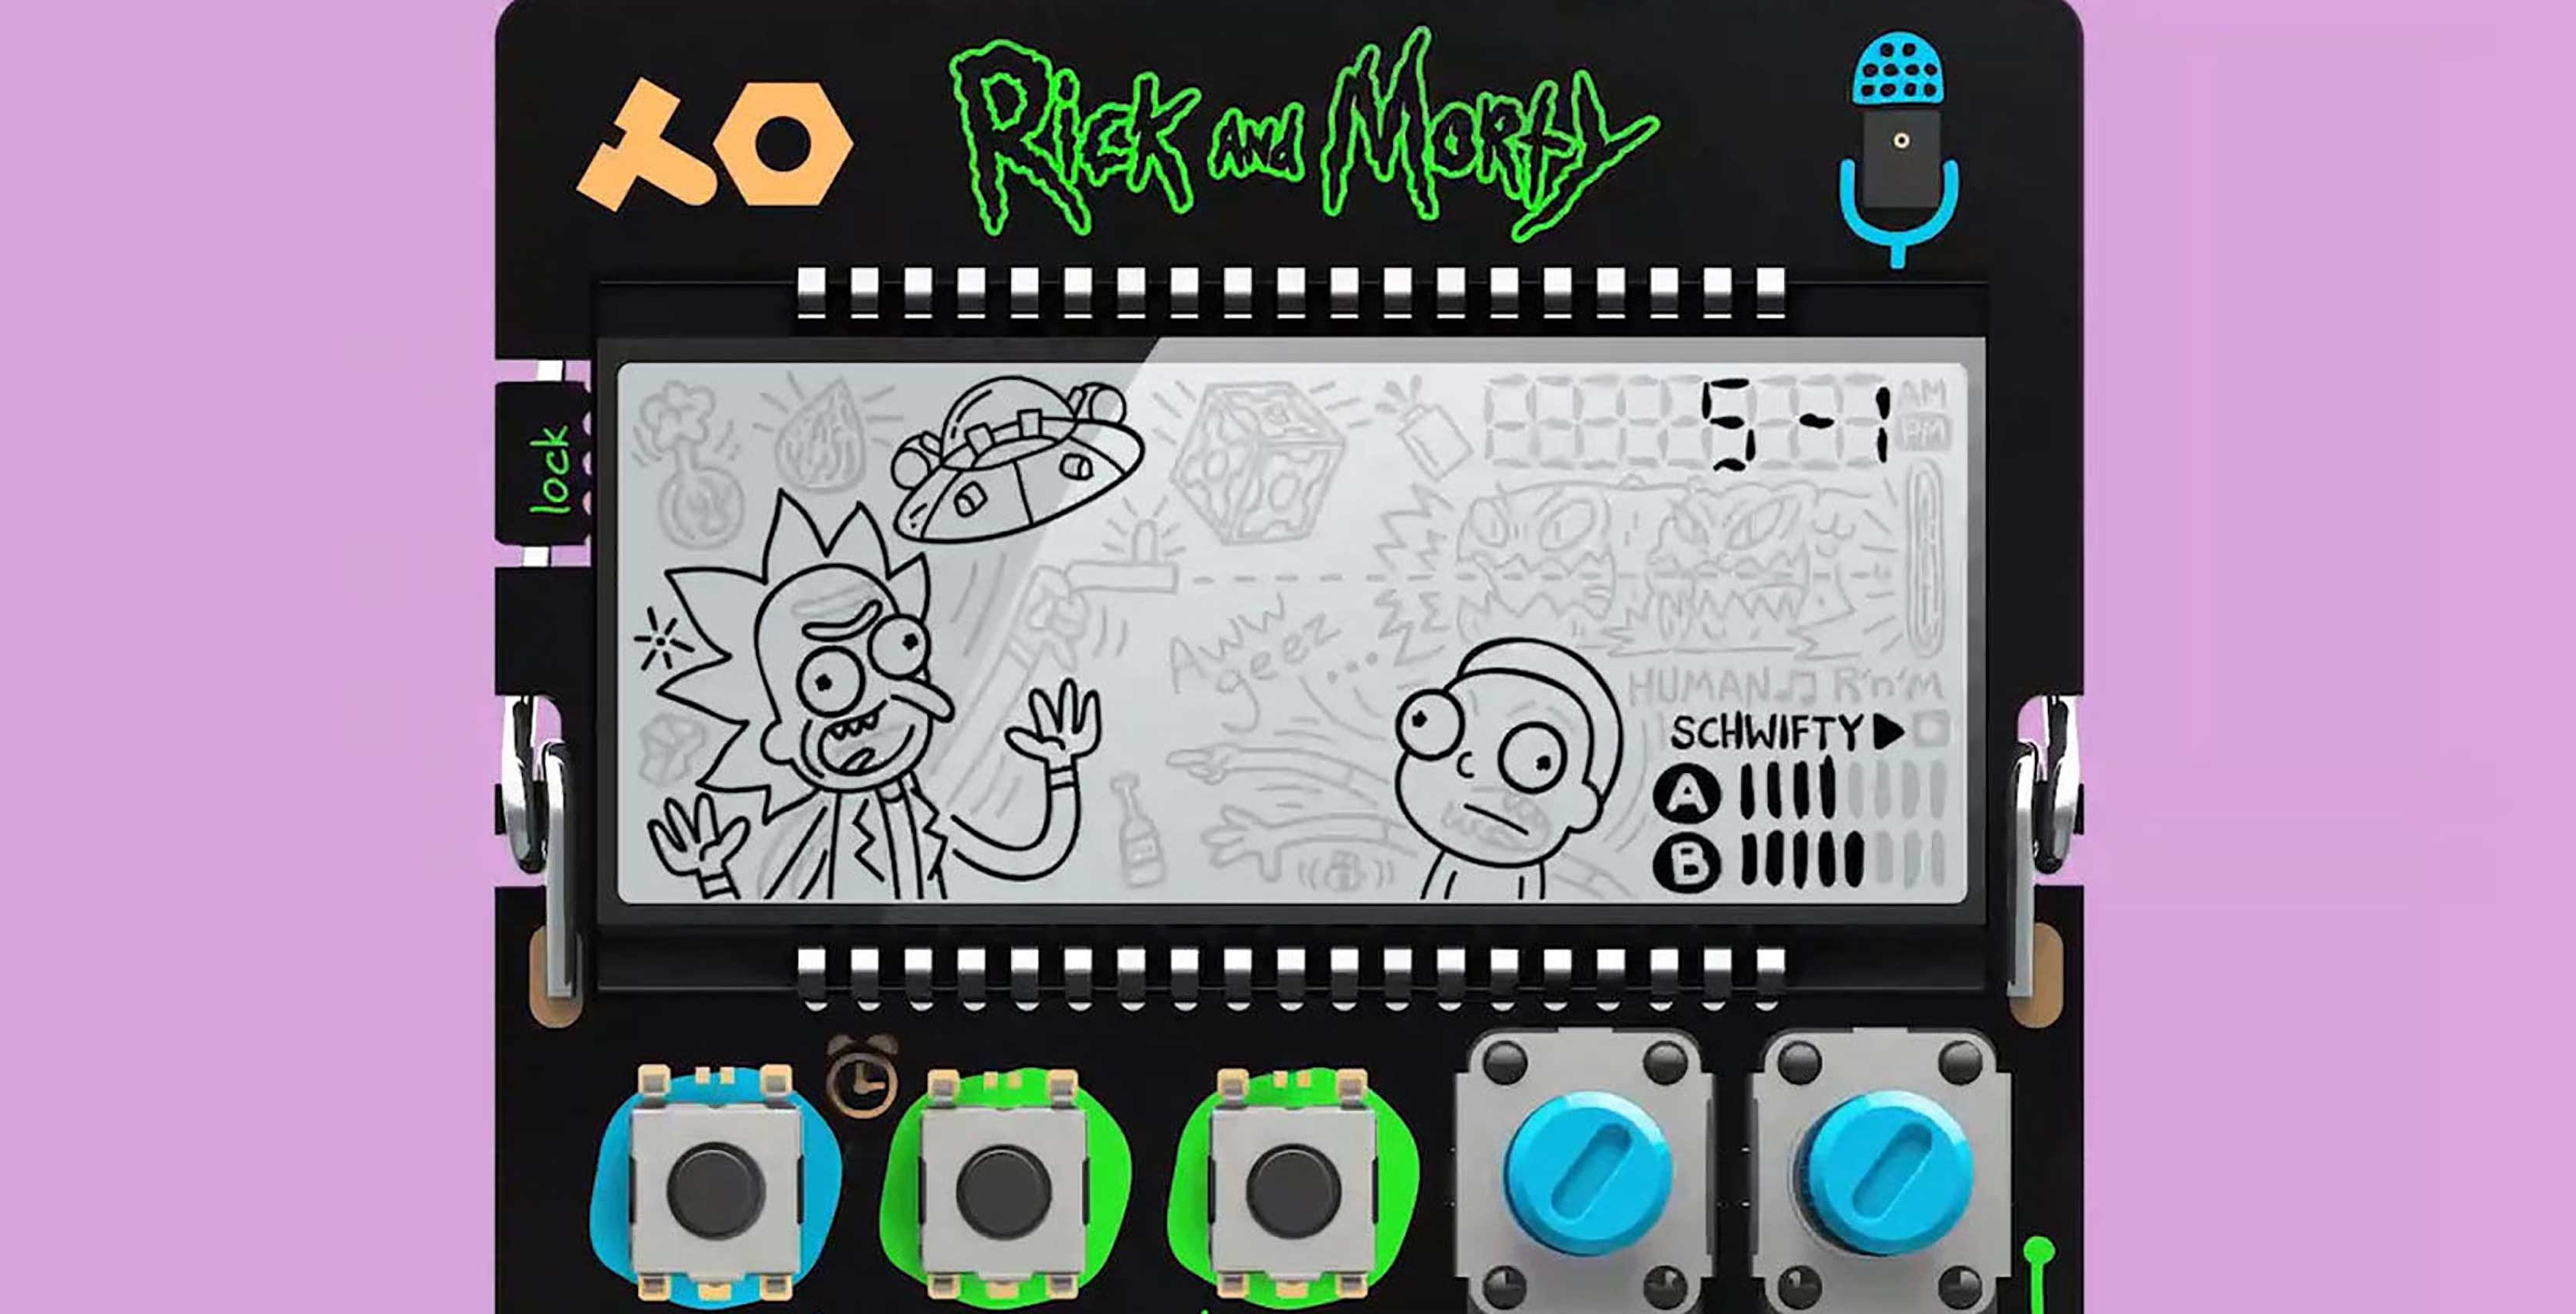 Rick and Morty vocal synthesizer